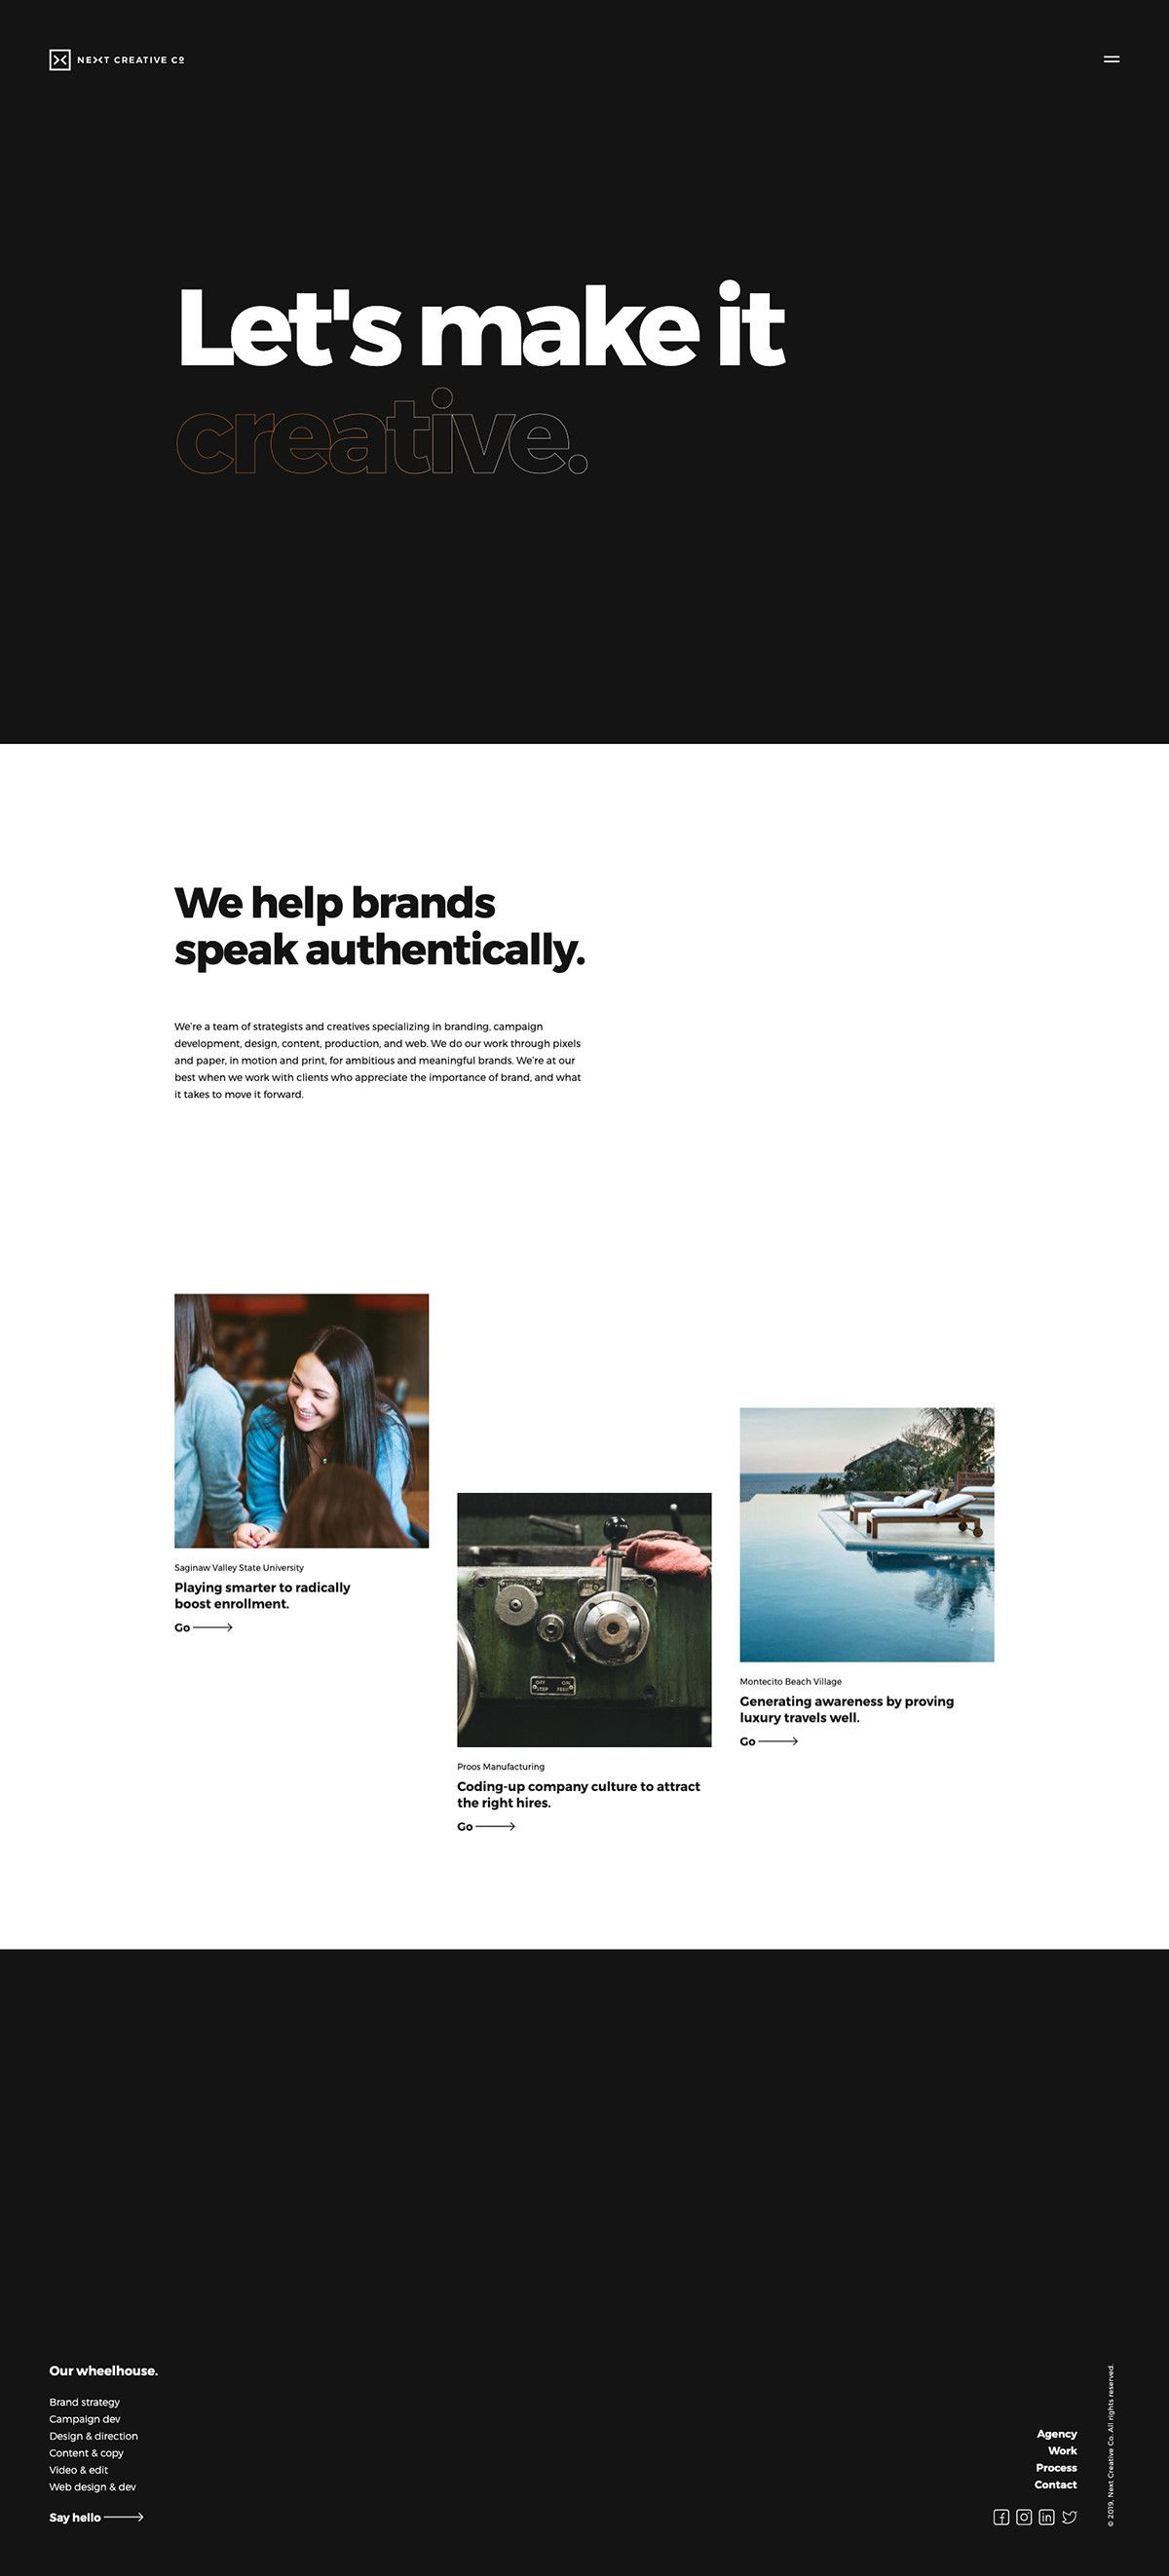 Site Of The Day Next Creative Co Https Mindsparklemag Com Website Next Creative Co By Next Creat Web Design Quotes Creative Web Design Web Design Websites